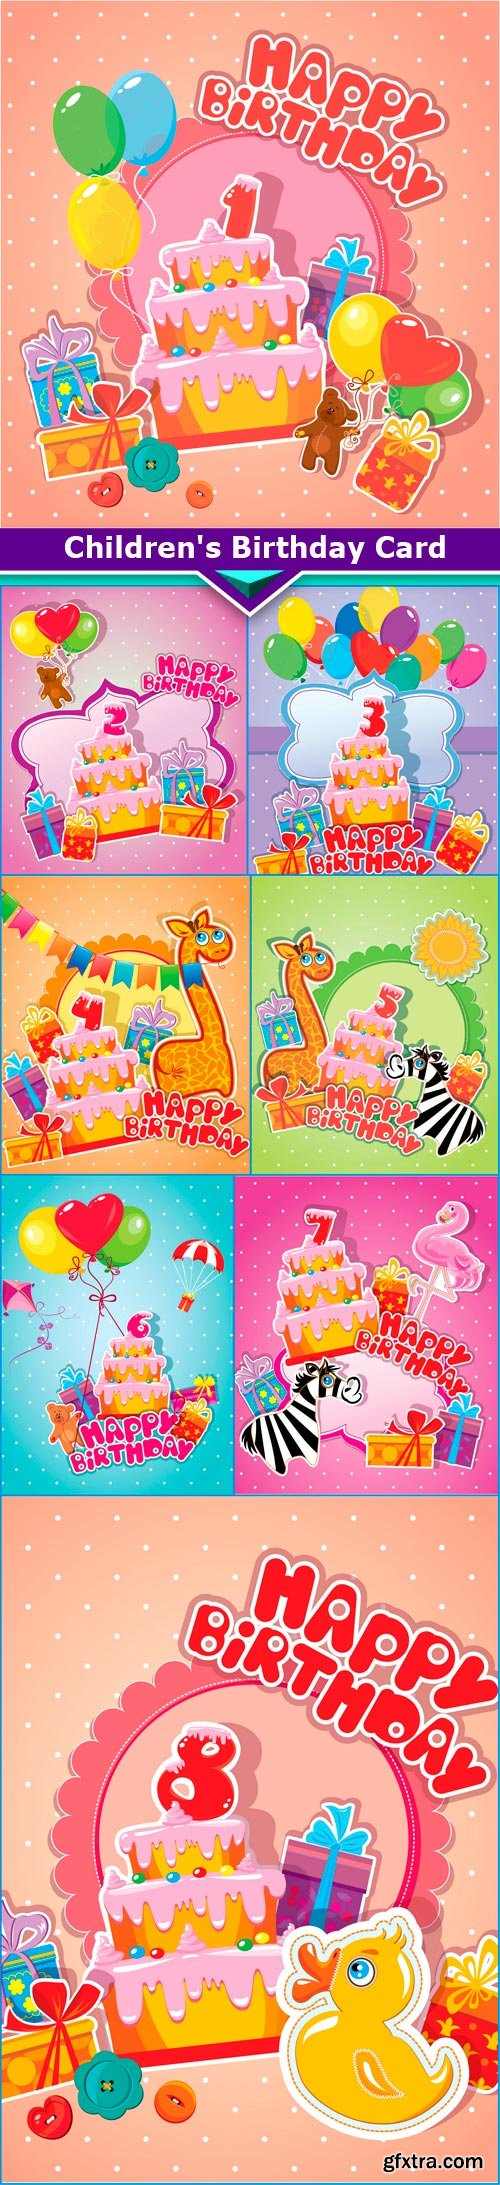 Children's Birthday Card 8x JPEG